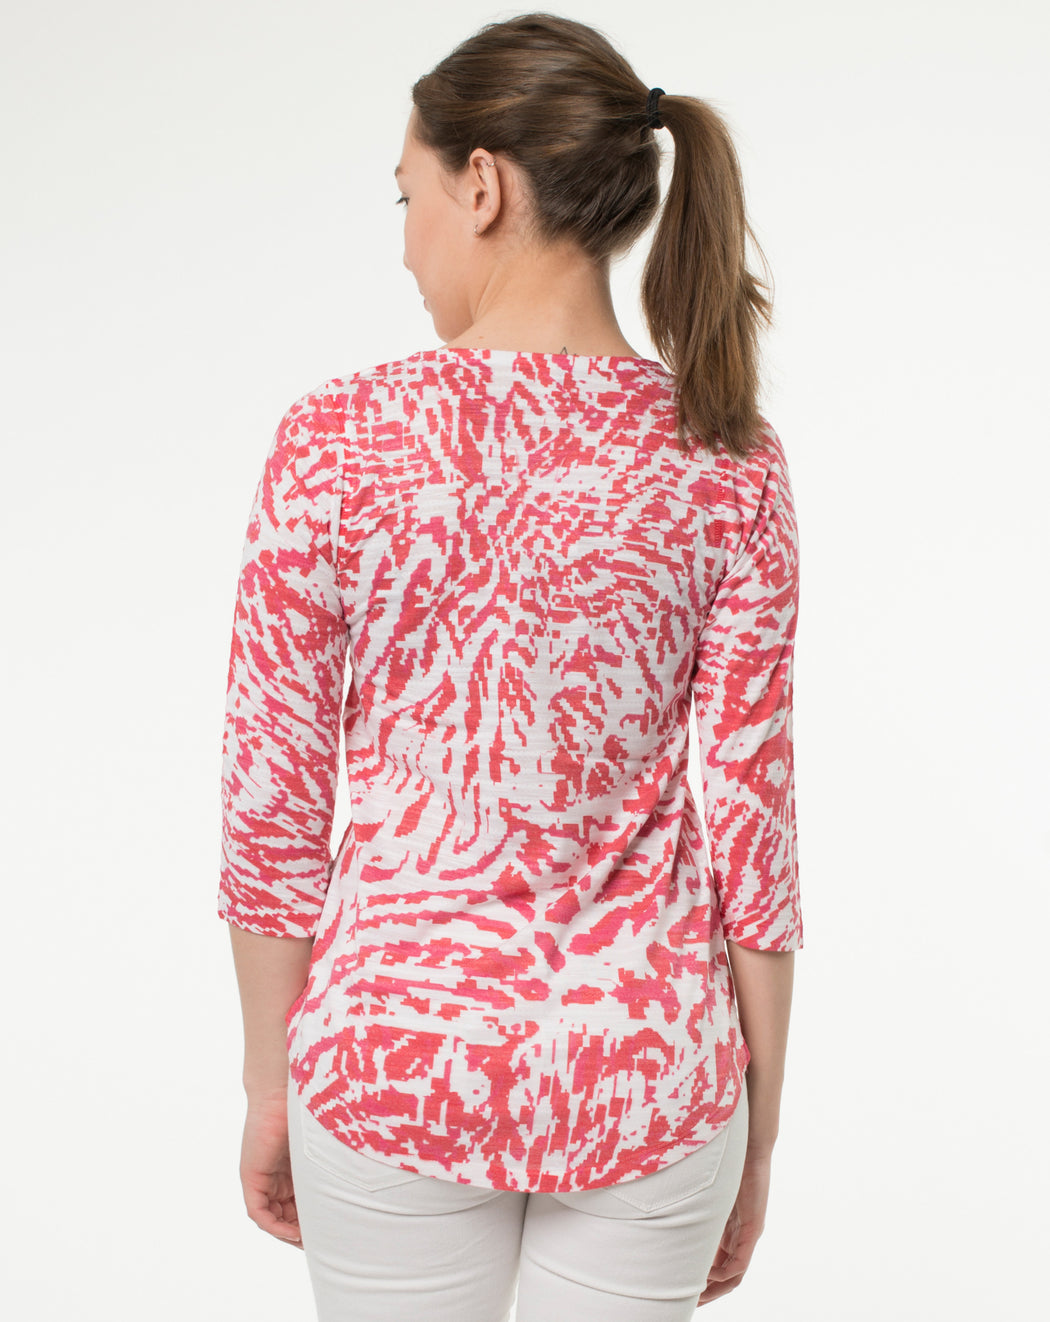 Tunic 2 in Léopard Print - Atelier5